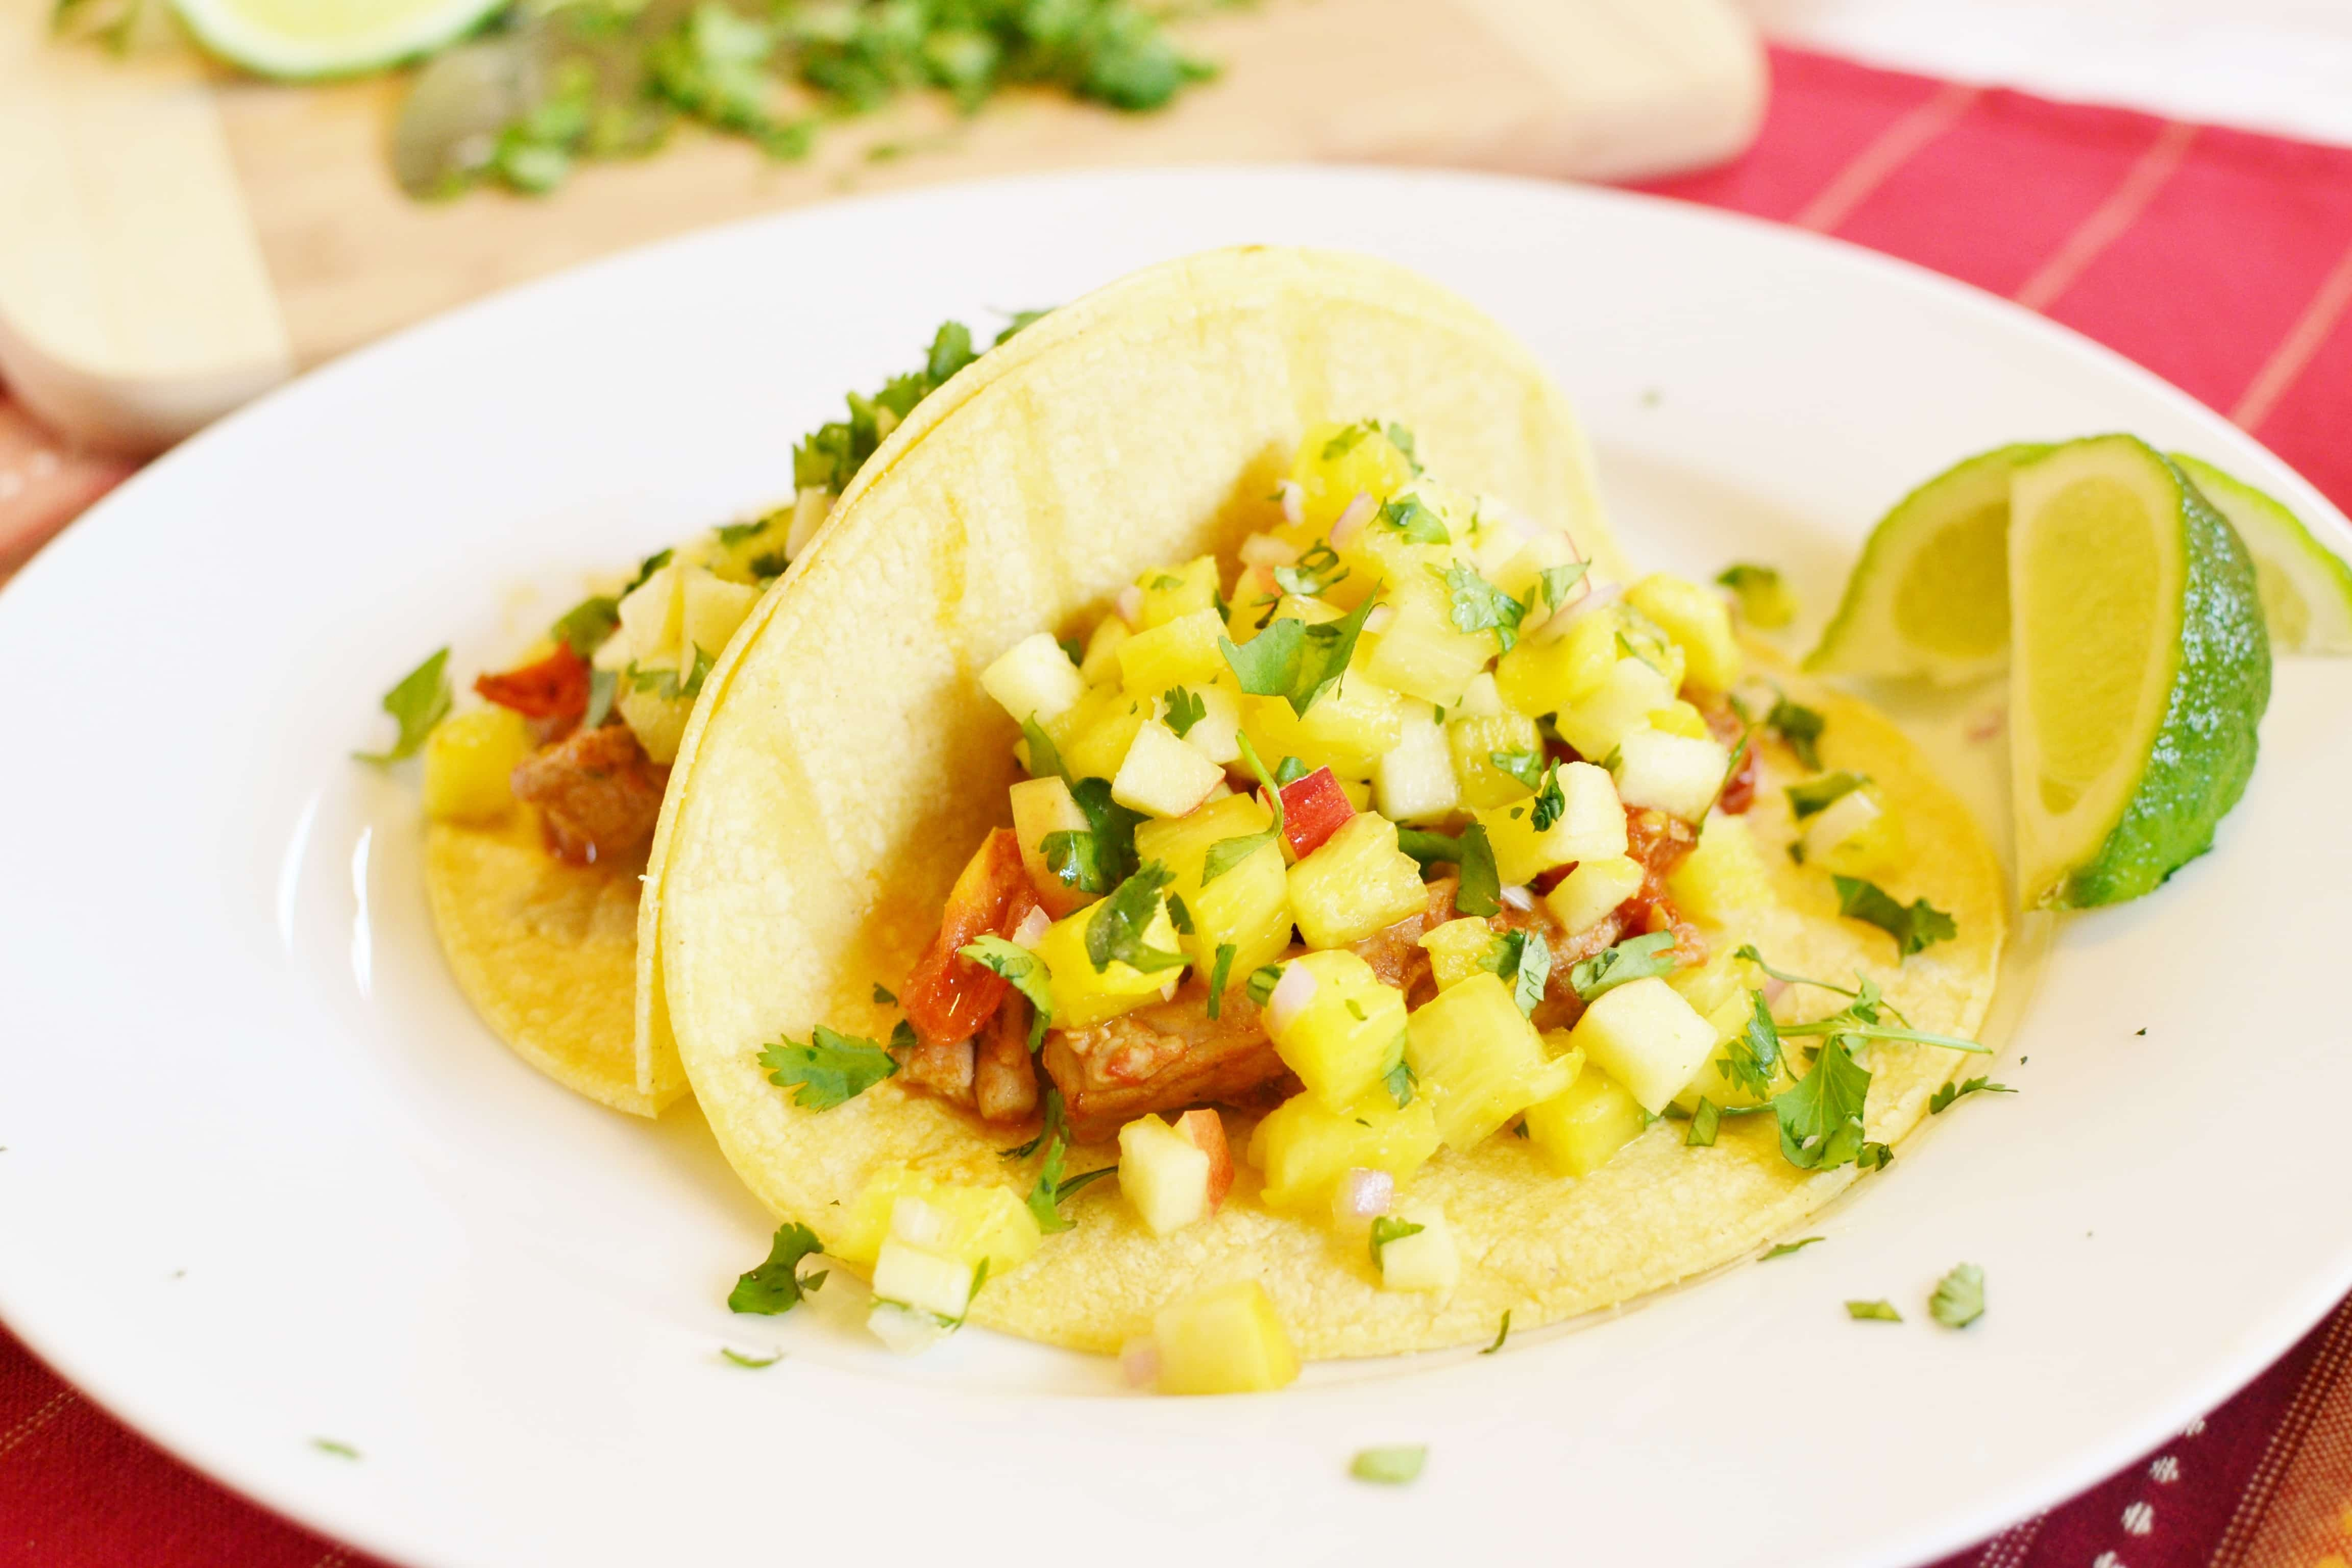 These 21 Day Fix Tacos have a delicious smoky pork filling and are topped with a sweet and tart pineapple salsa. A quick, easy and delicious dinner!